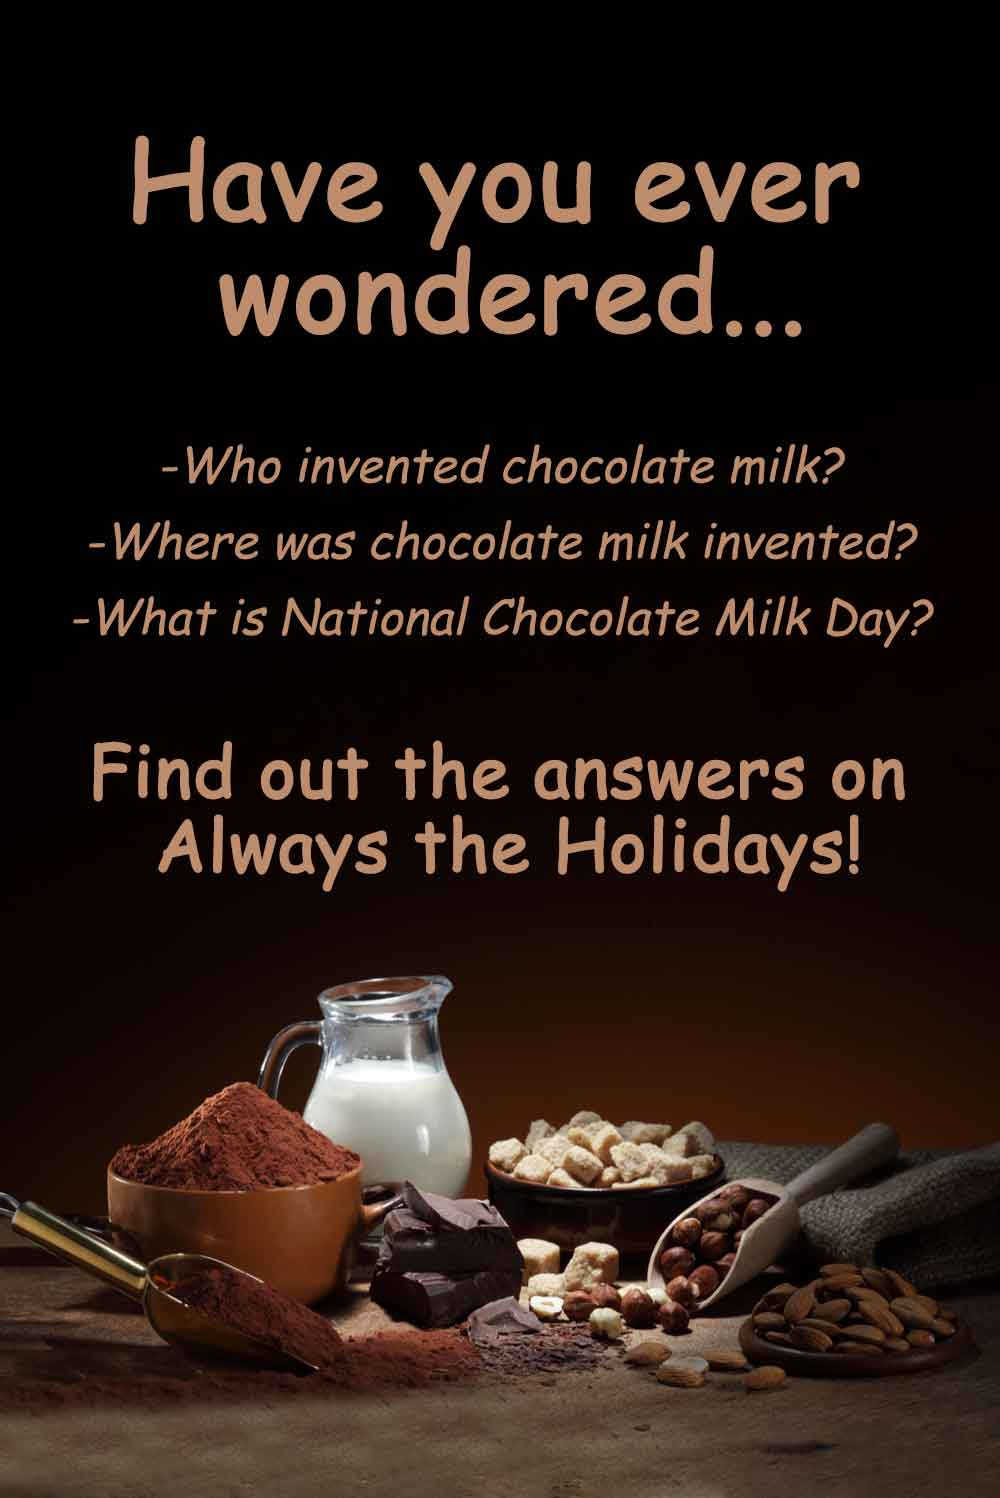 The ingredients for homemade chocolate milk with a text overlay asking who invented chocolate milk and where was chocolate milk invented.